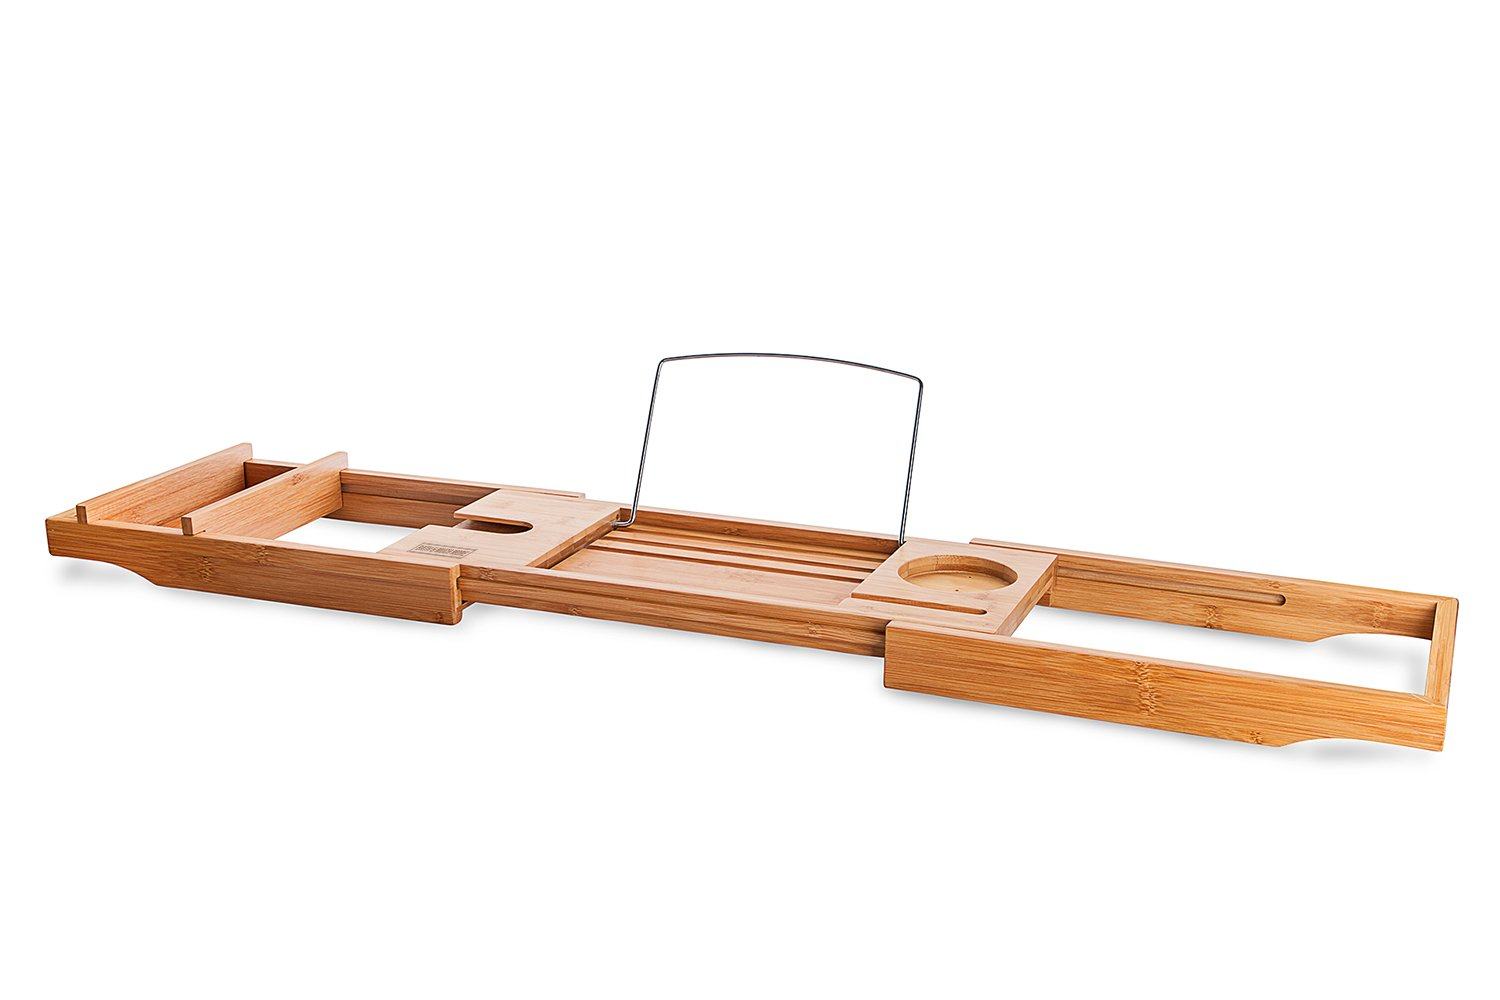 Bamboo Bathtub Tray Caddy - Expandable - Water Resistant - Bath Organizer for Cell Phone Book iPad